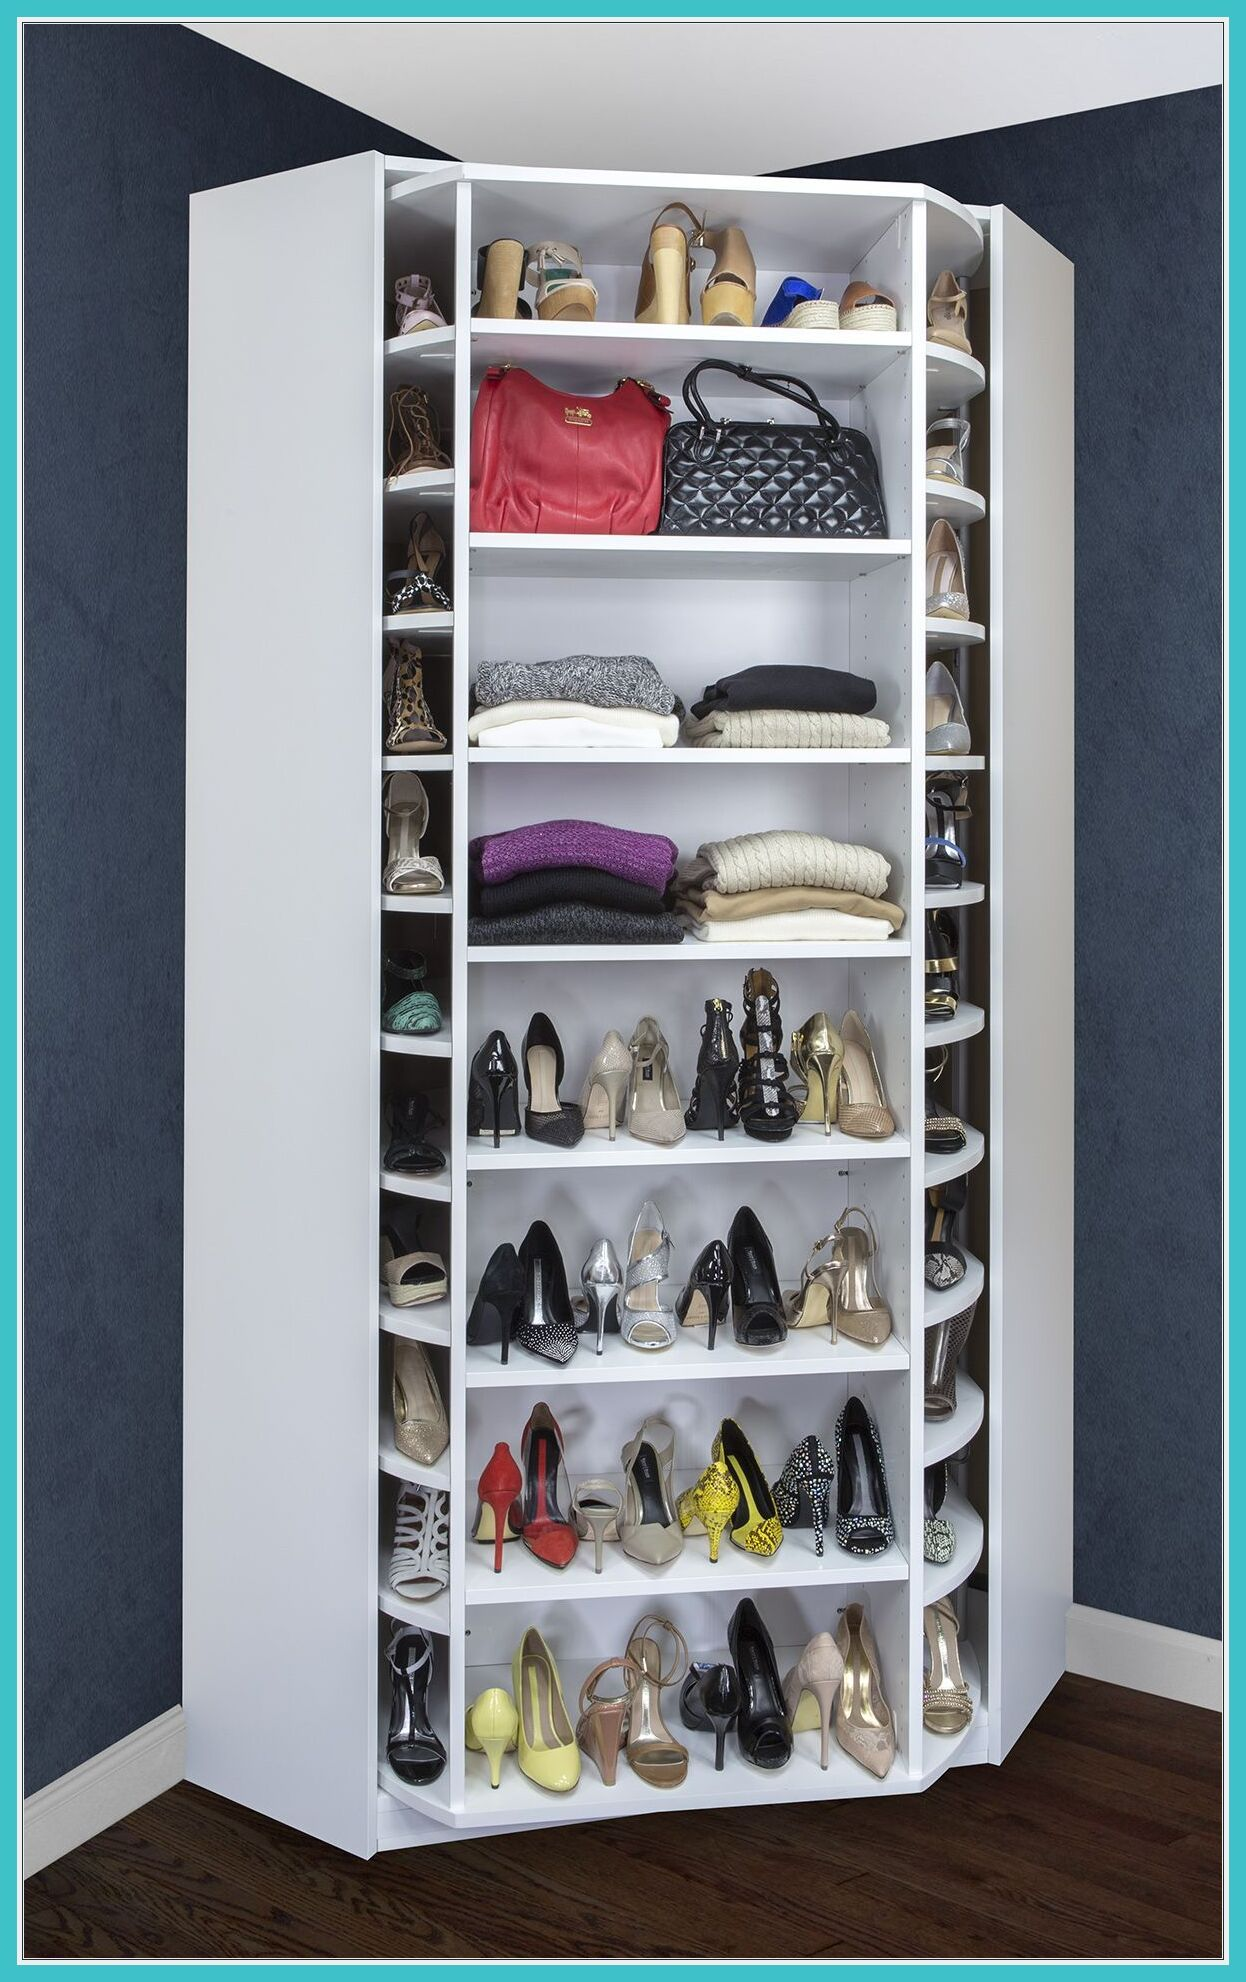 Rotating Shoe Rack Plans In 2020 Diy Clothes Storage Clothes